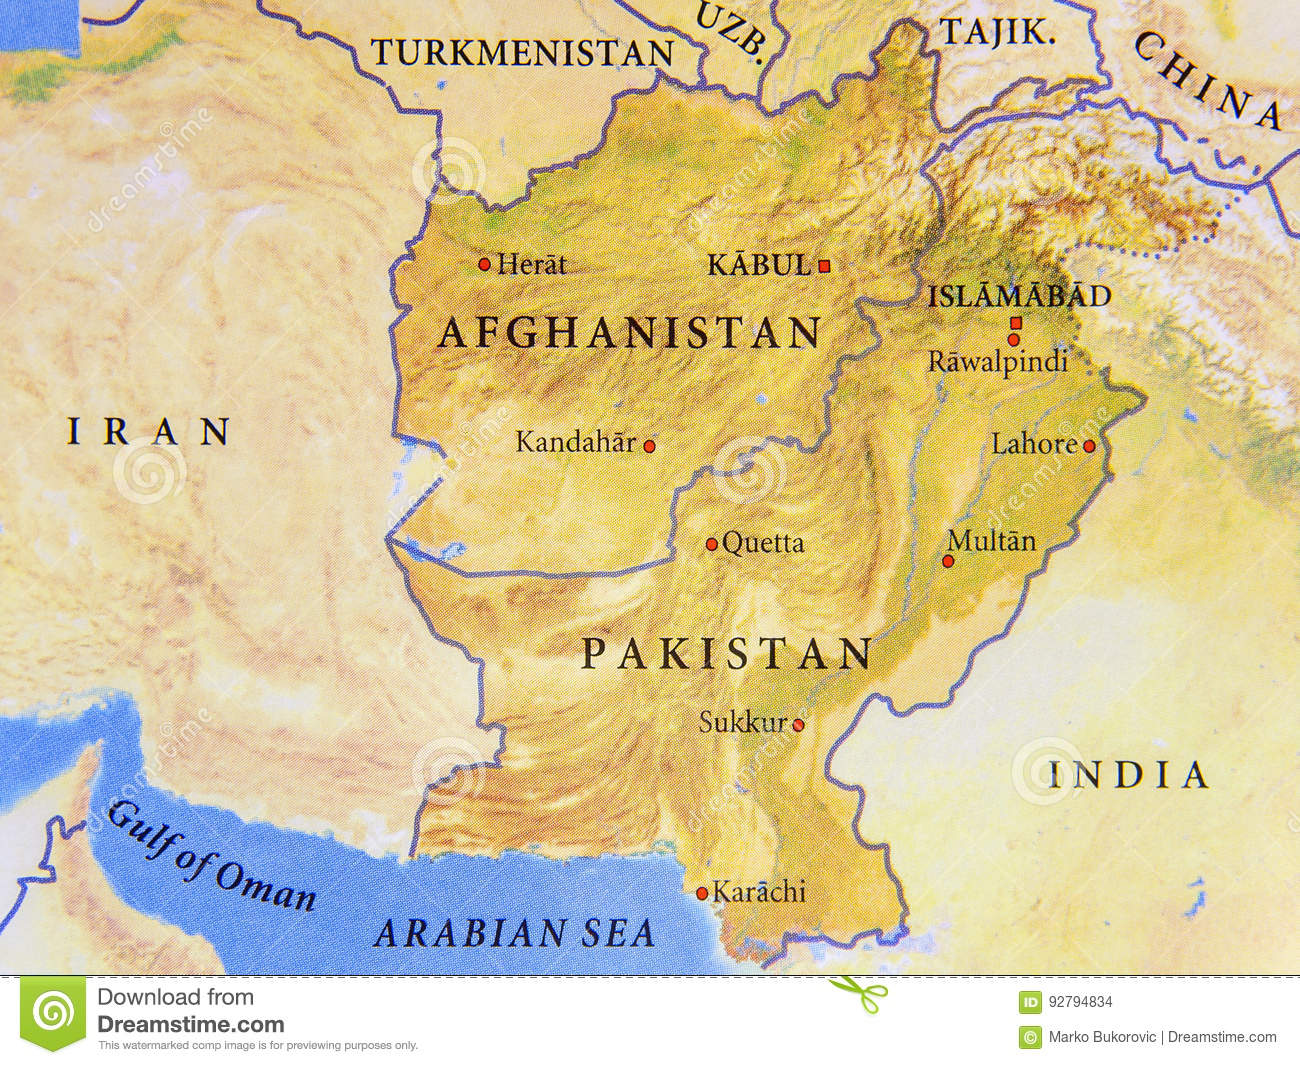 Map Of Afghanistan And Pakistan Geographic Map Of Afghanistan And Pakistan With Important Cities